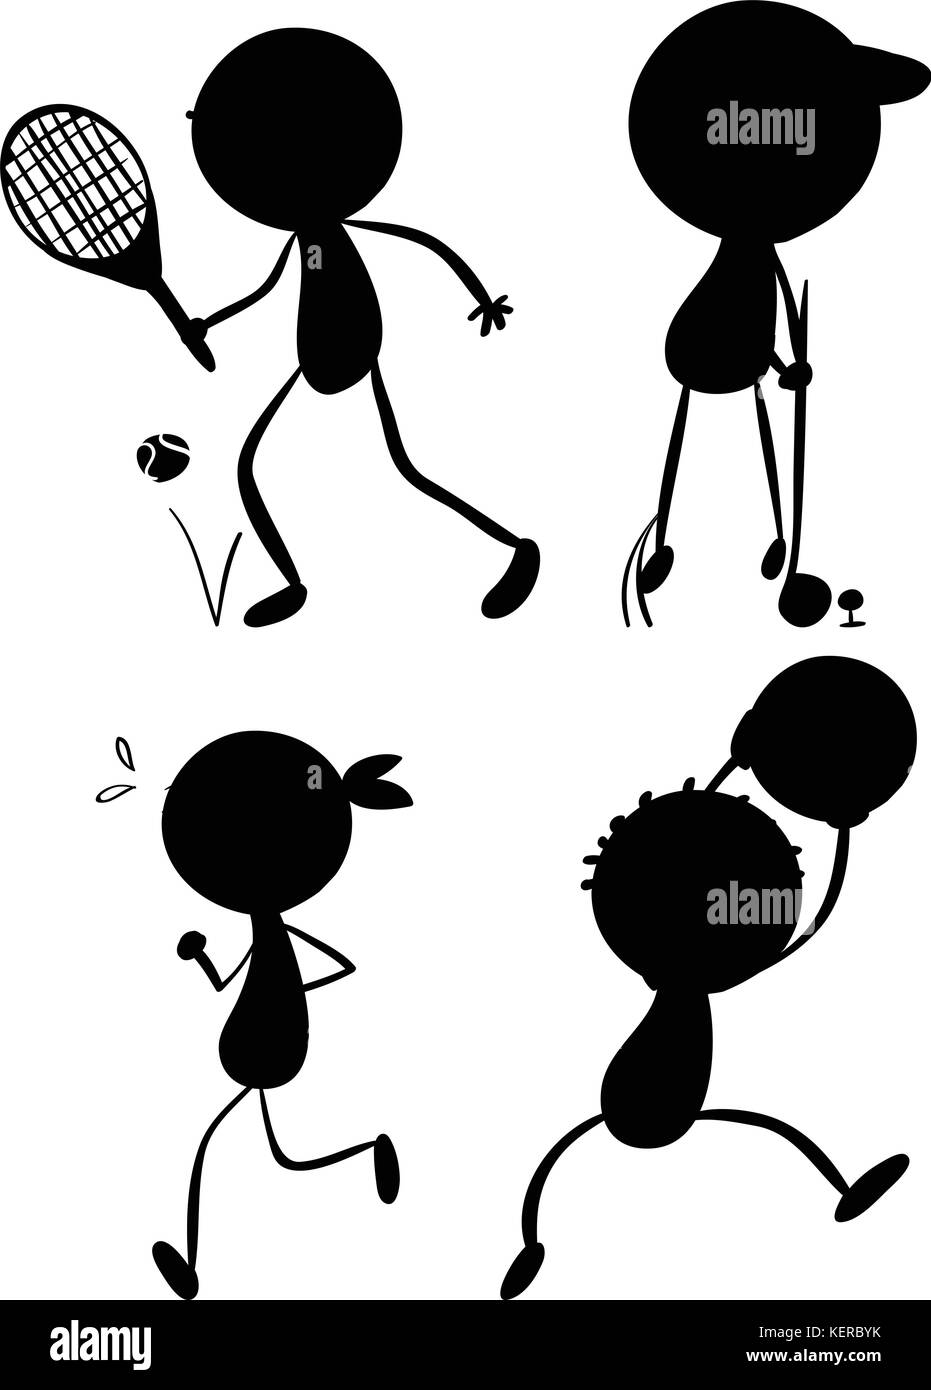 Illustration of the sport silhouettes on a white background - Stock Image